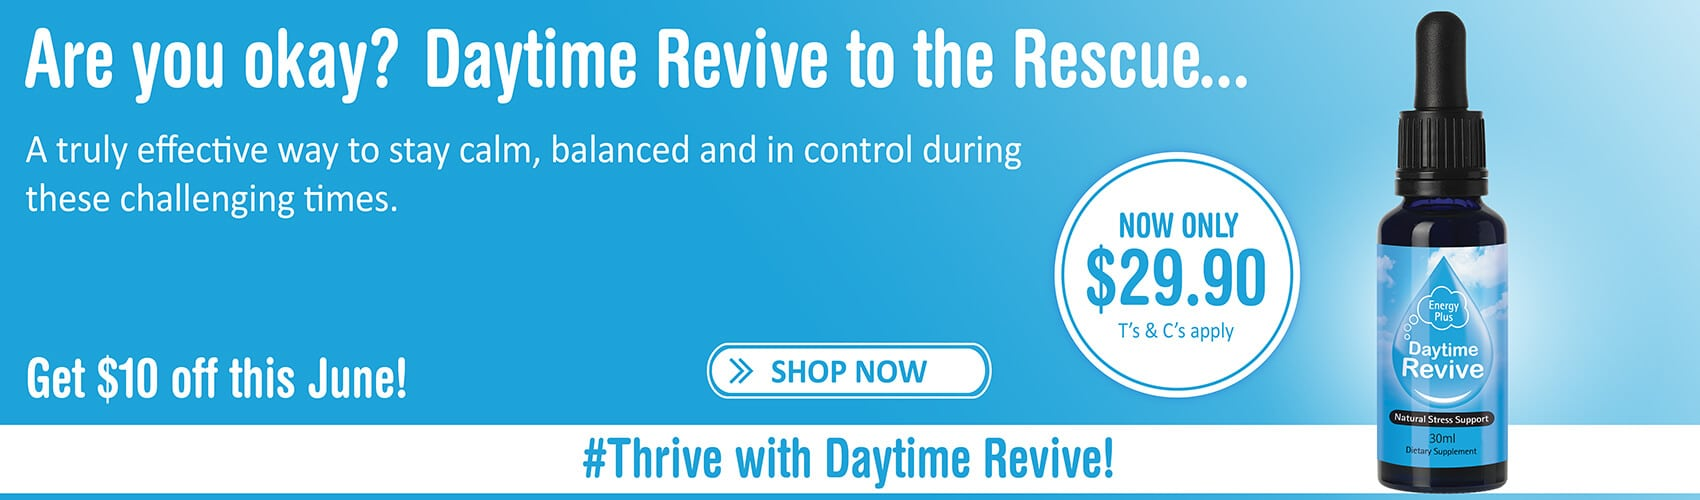 SleepDrops Daytime Revive 30ml Natural Stress Support Rescue NZ Remedy June Special Offer Banner